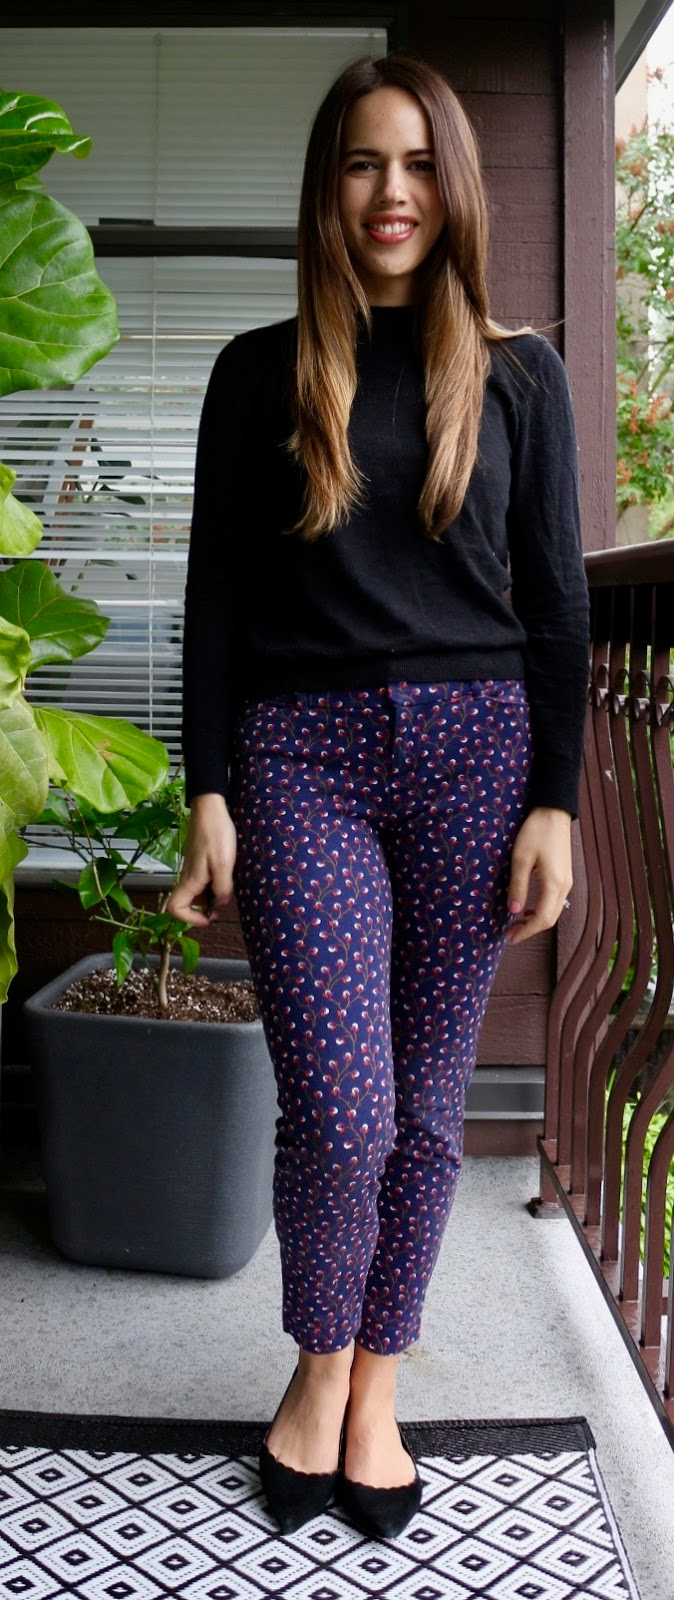 Jules in Flats - Black Sweater and Dot pants